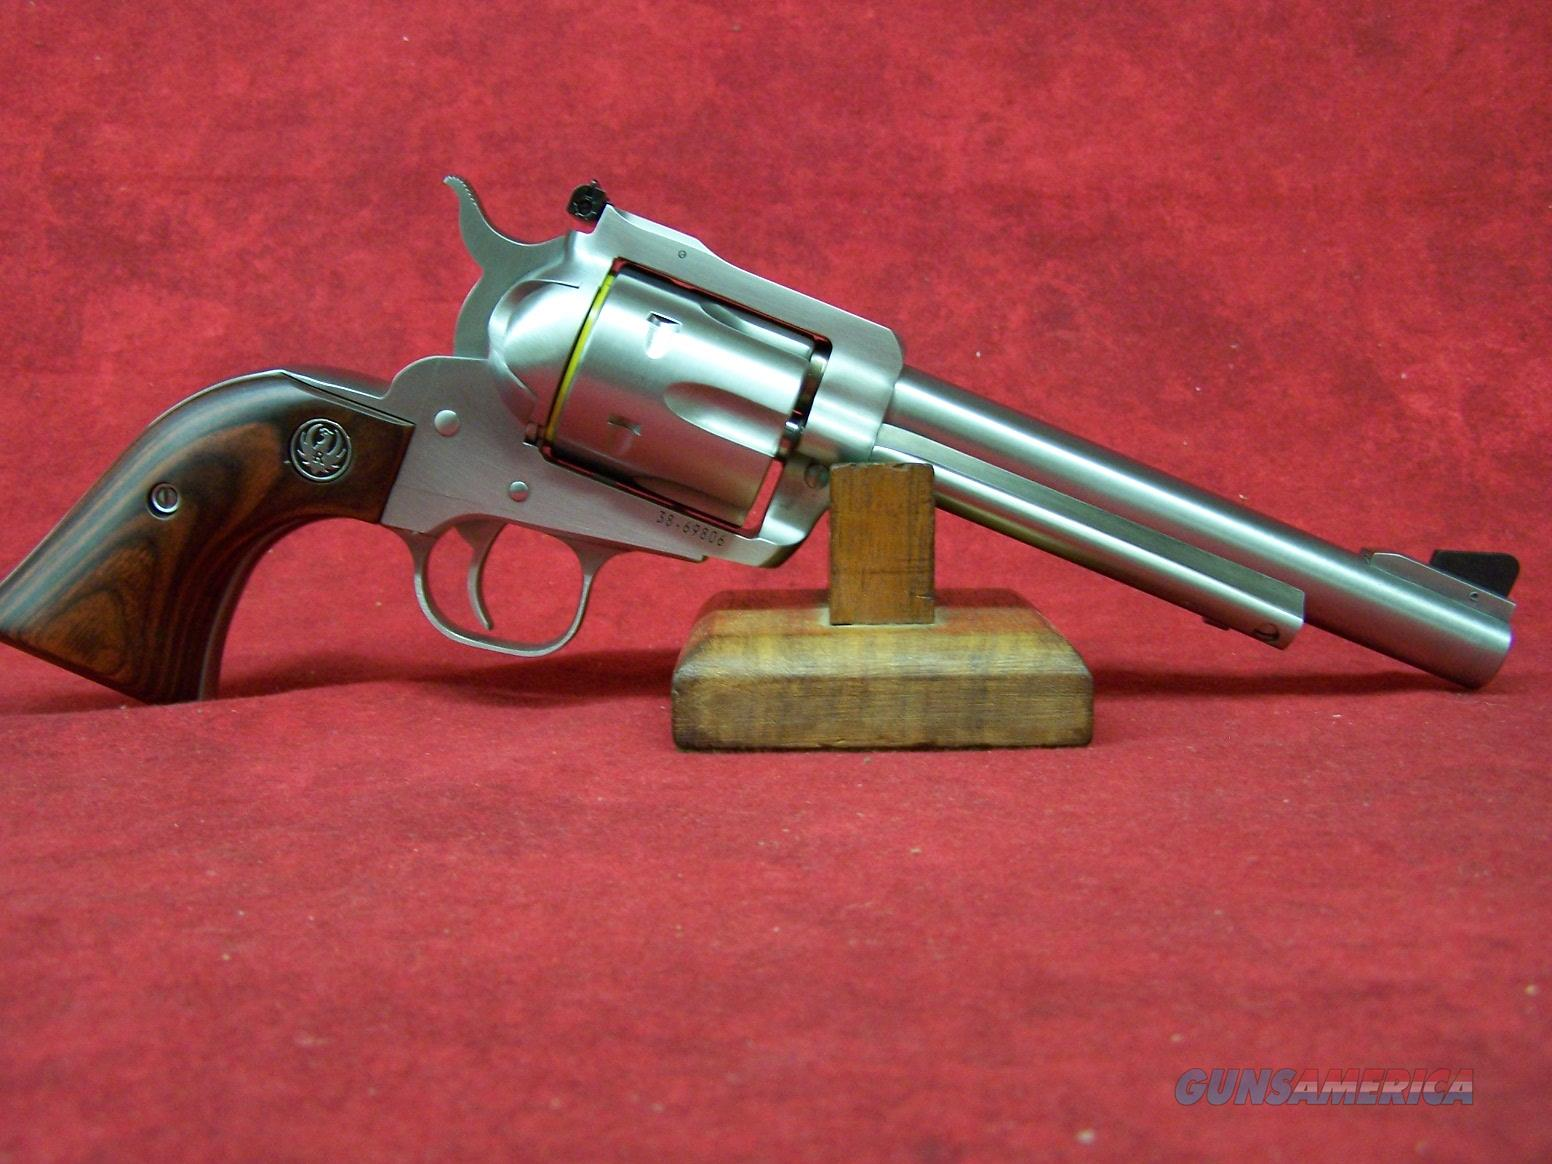 "Ruger Blackhawk 10MM / 40 S&W 6.5"" Barrel (00474)  Guns > Pistols > Ruger Single Action Revolvers > Blackhawk Type"